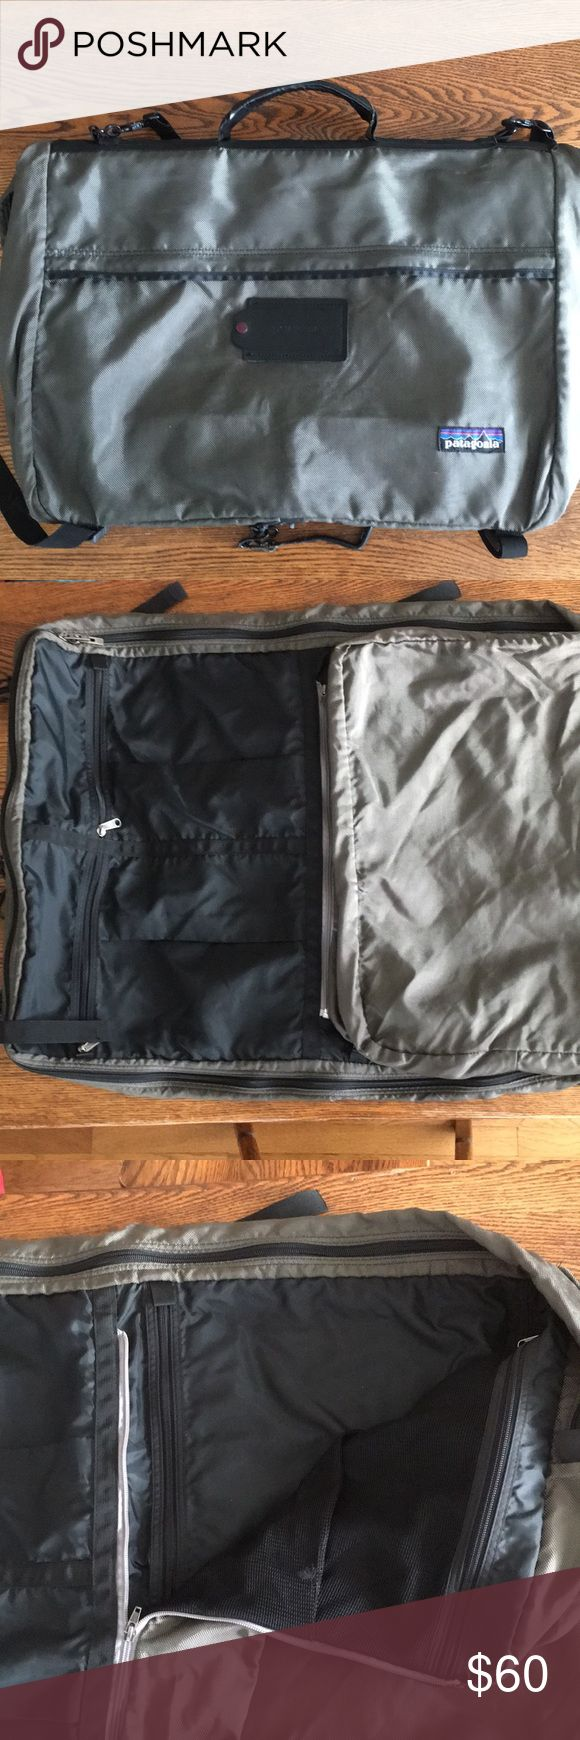 Patagonia Burrito Suiter (soft sided trifold) Soft sided trifold garment bag. Built to hold your clothes wrinkle-free on hangers and to reduce your packing and unpacking time. This convenient carry on garment bag can be folded in thirds and hung in the closet of an airplane. Multiple zippered pockets to keep your shoes away from your toiletries and your toiletries away from your clothes. Padded shoulder strap and top handle for briefcase carry. Aircraft aluminum stay will stay, but needs to…